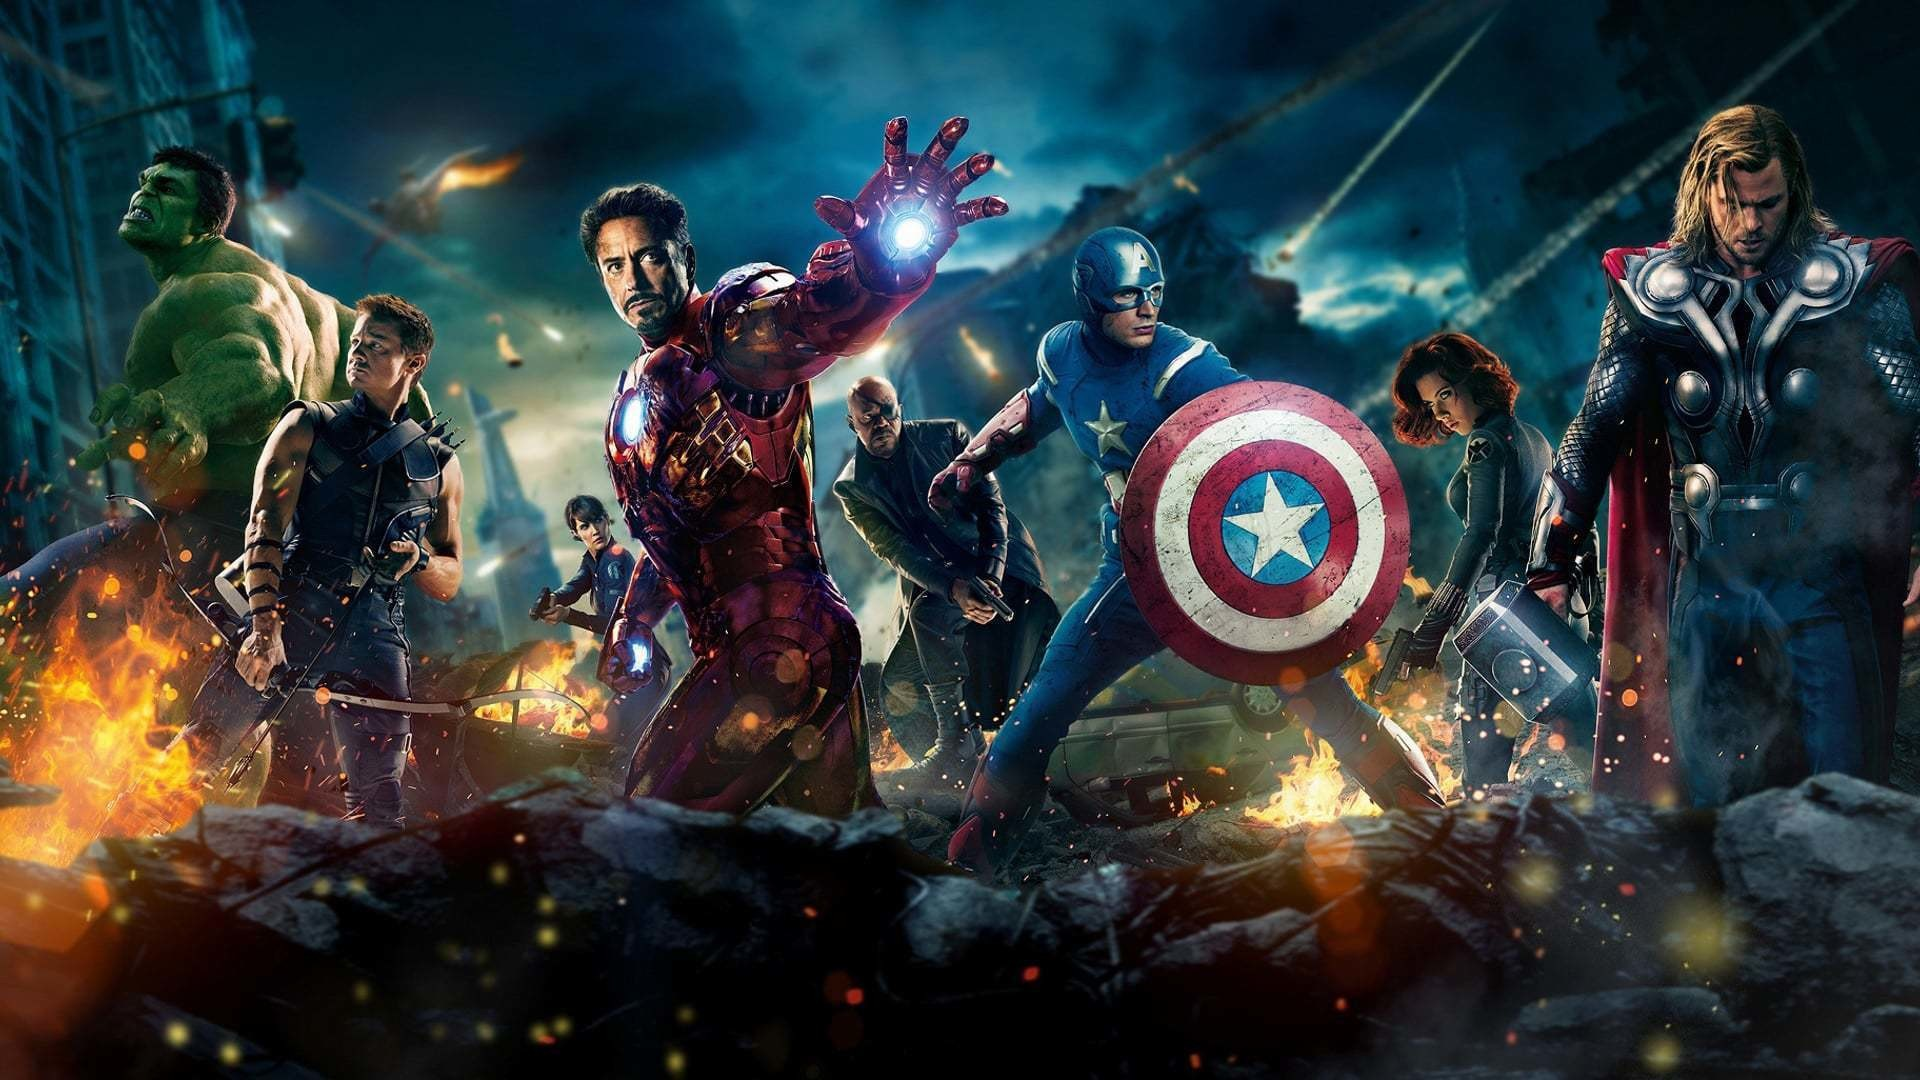 watch free online movie the avengers 2012